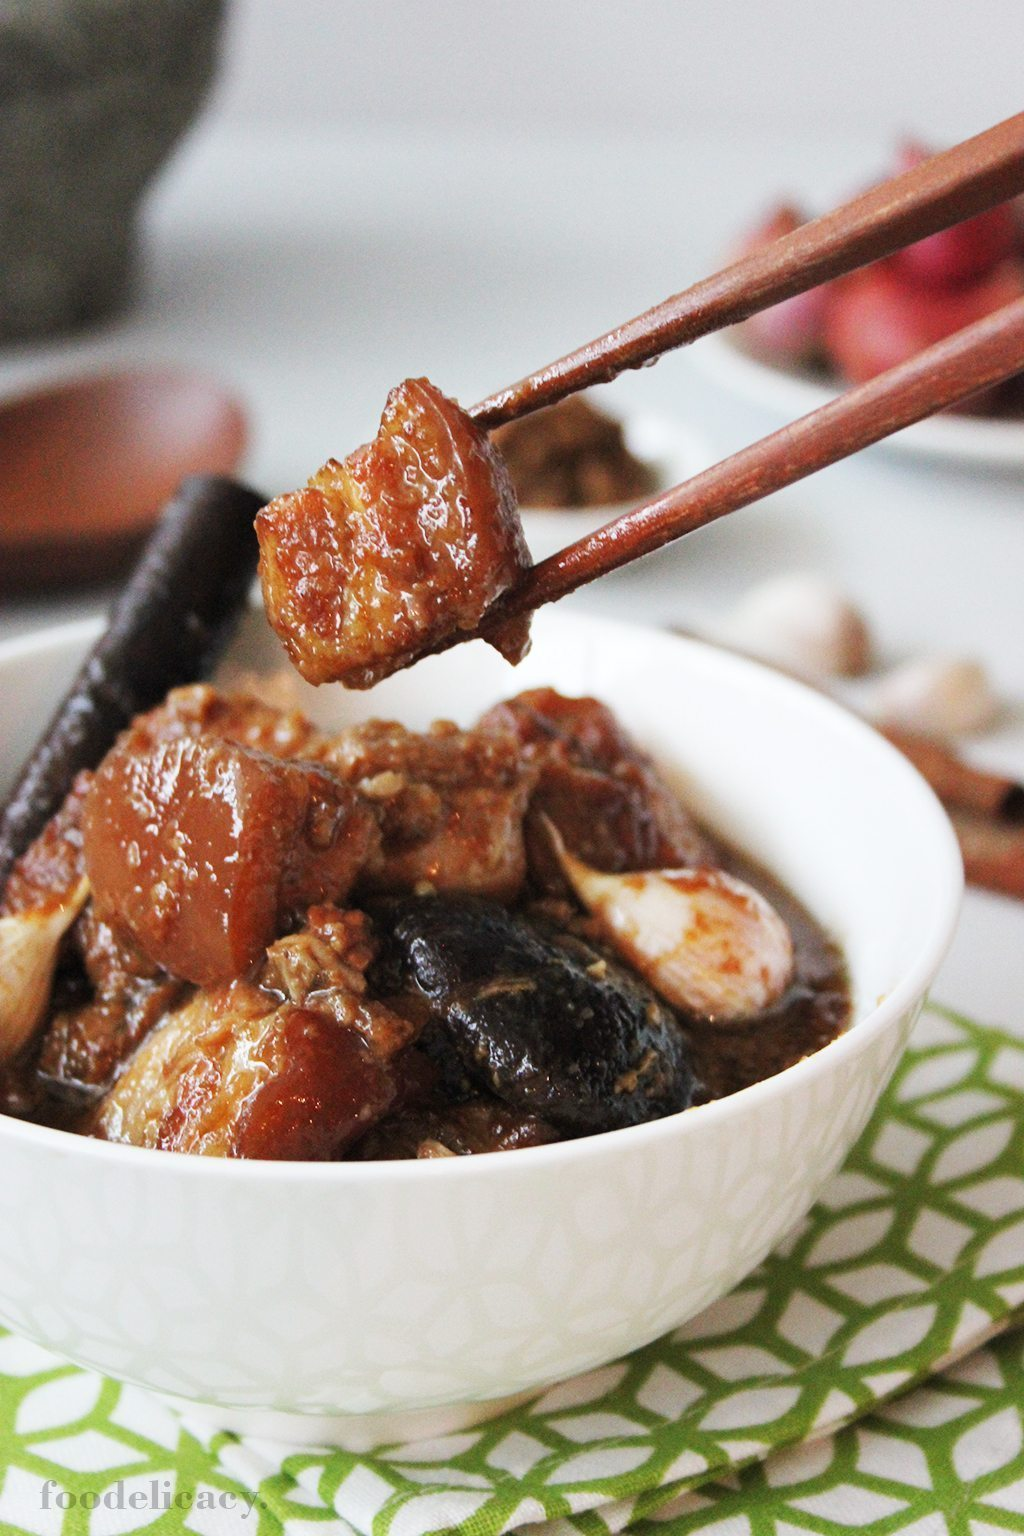 A Peranakan dish of babi pongteh (braised pork in fermented soy bean paste)